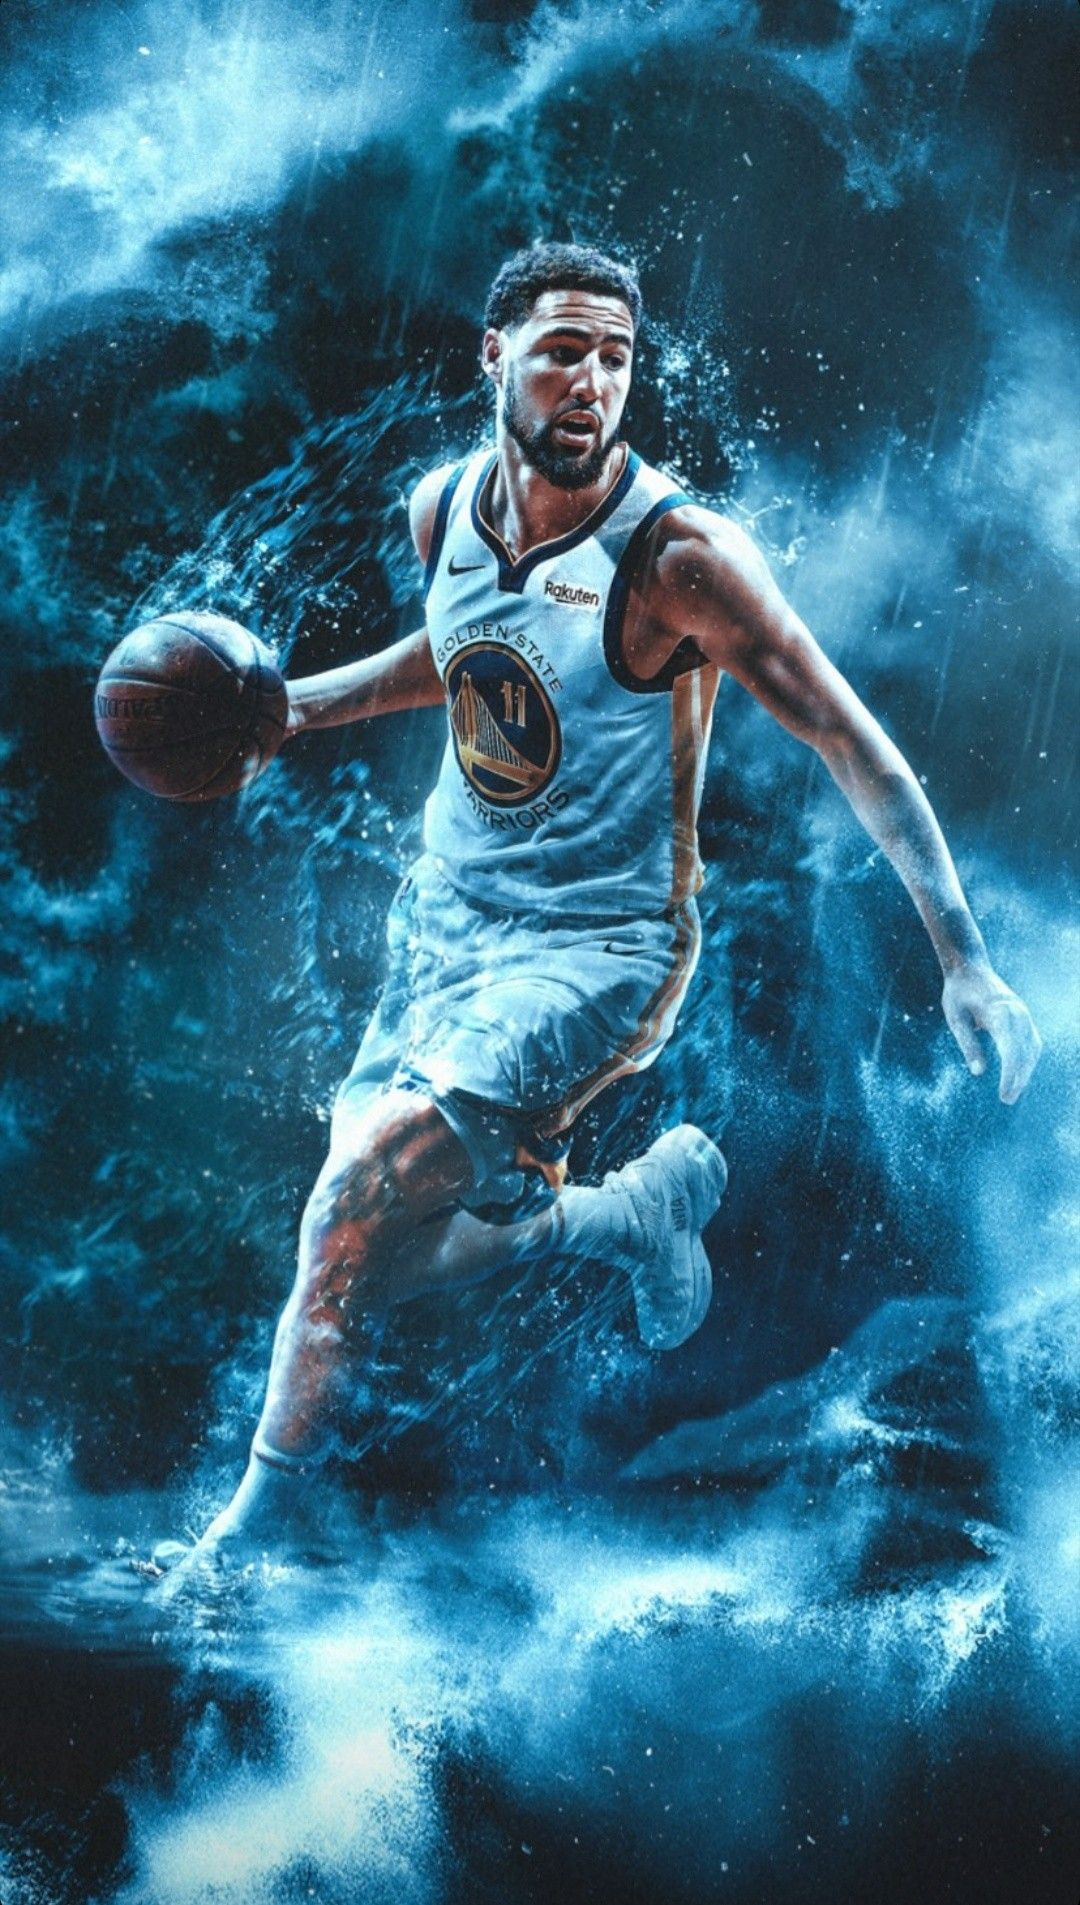 Klay Thompson Wallpaper In 2020 Klay Thompson Wallpaper Nba Pictures Klay Thompson